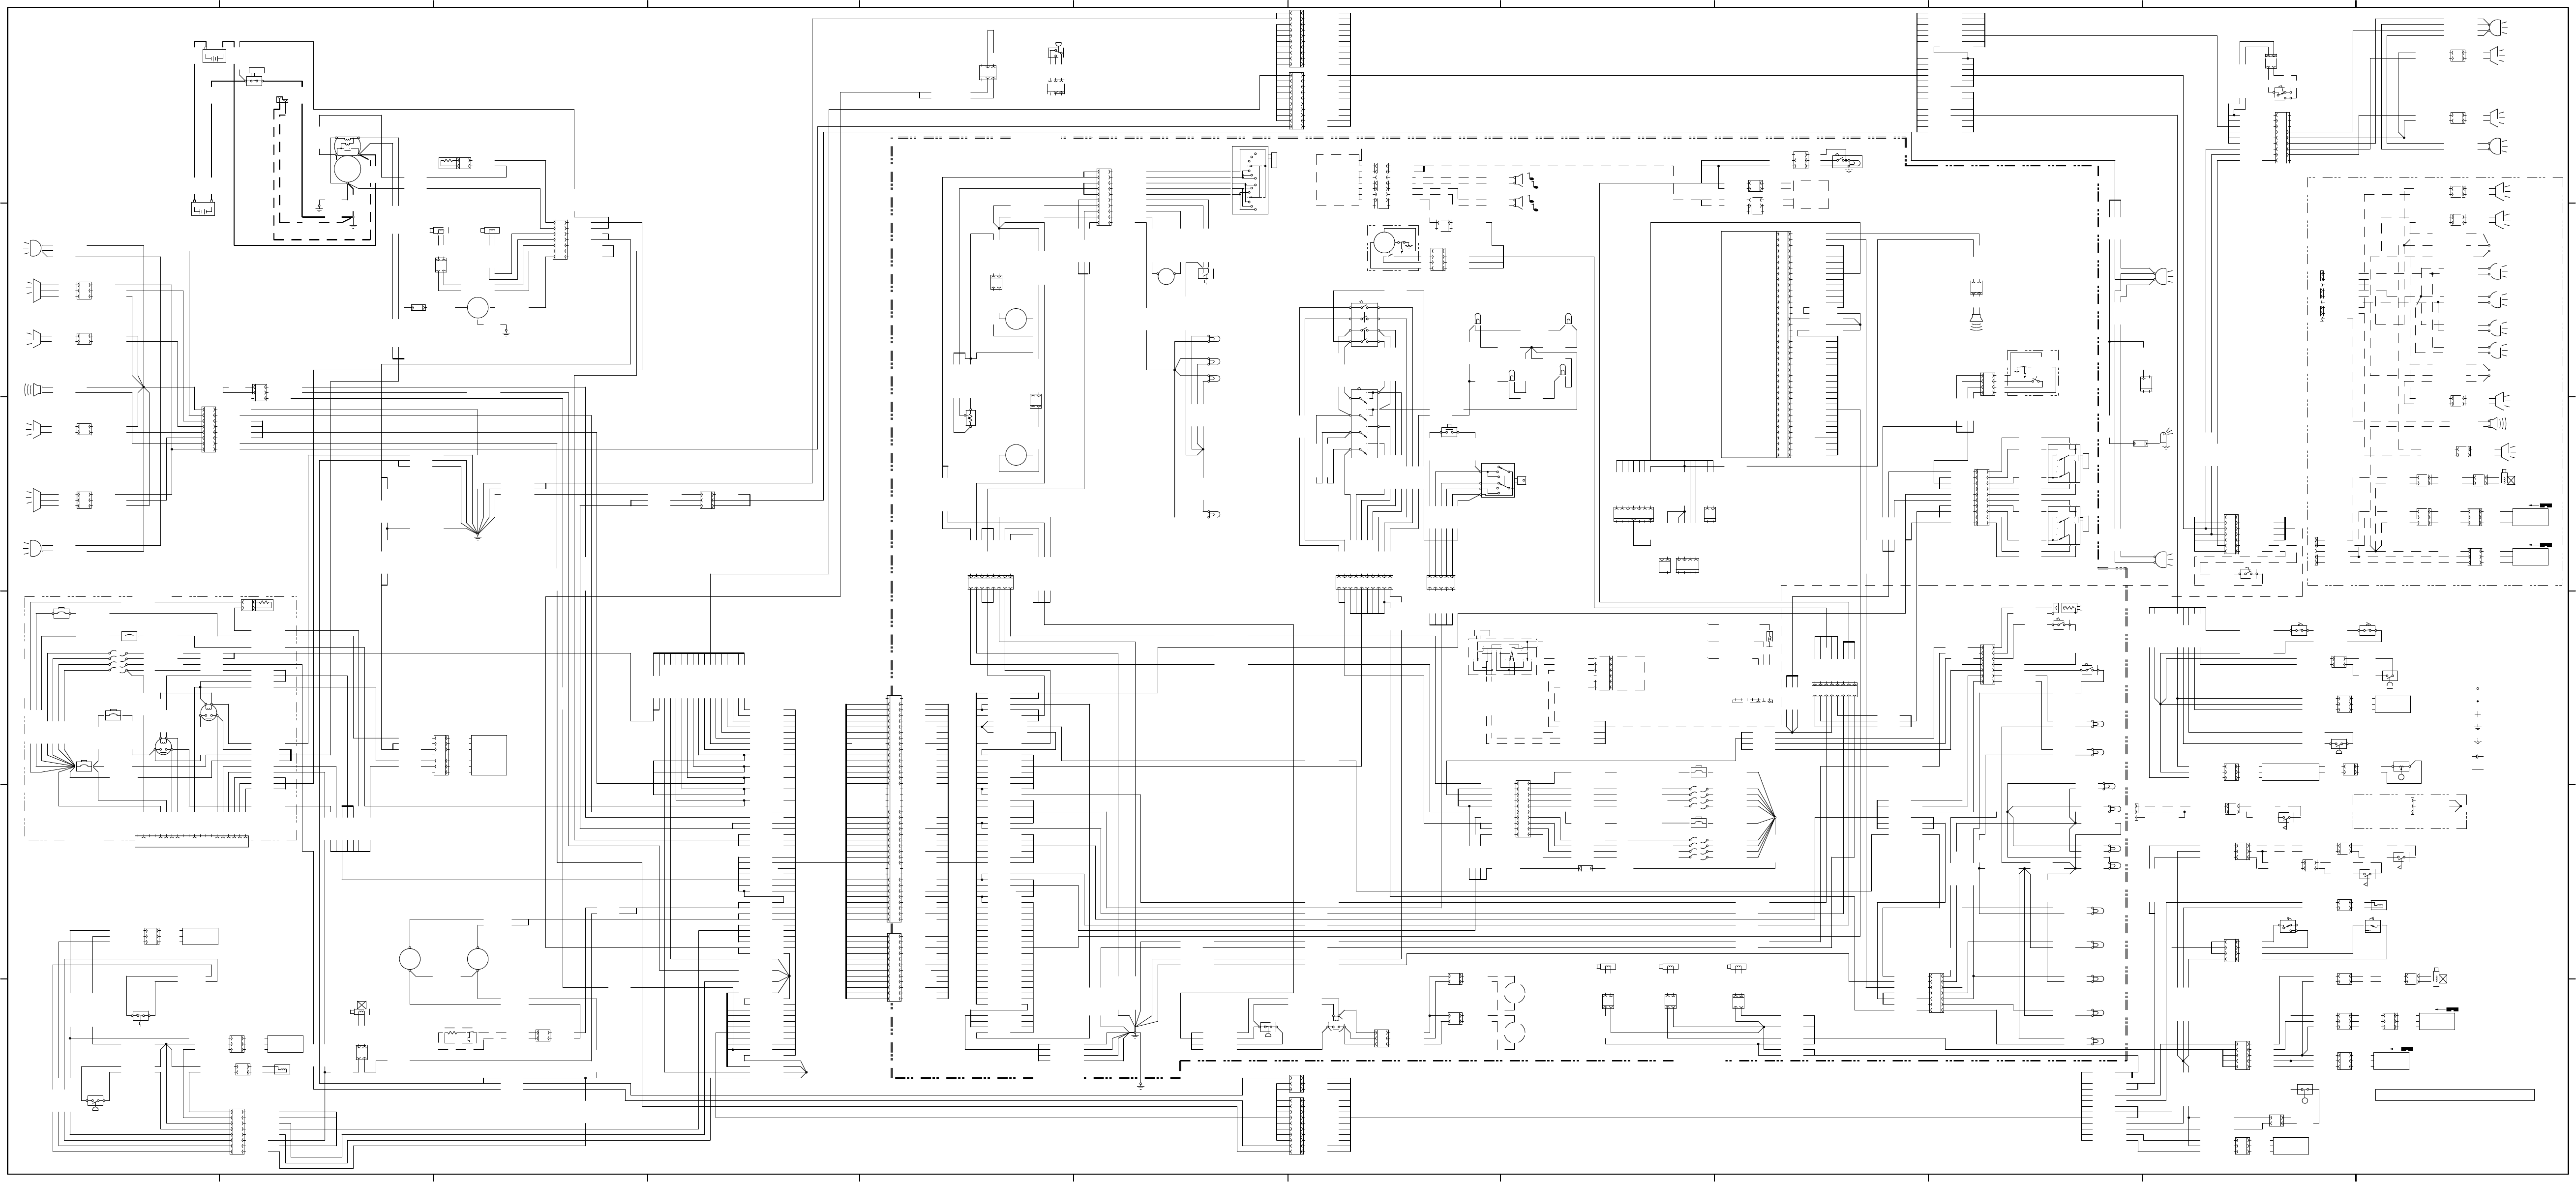 966f Electrical System Schematic